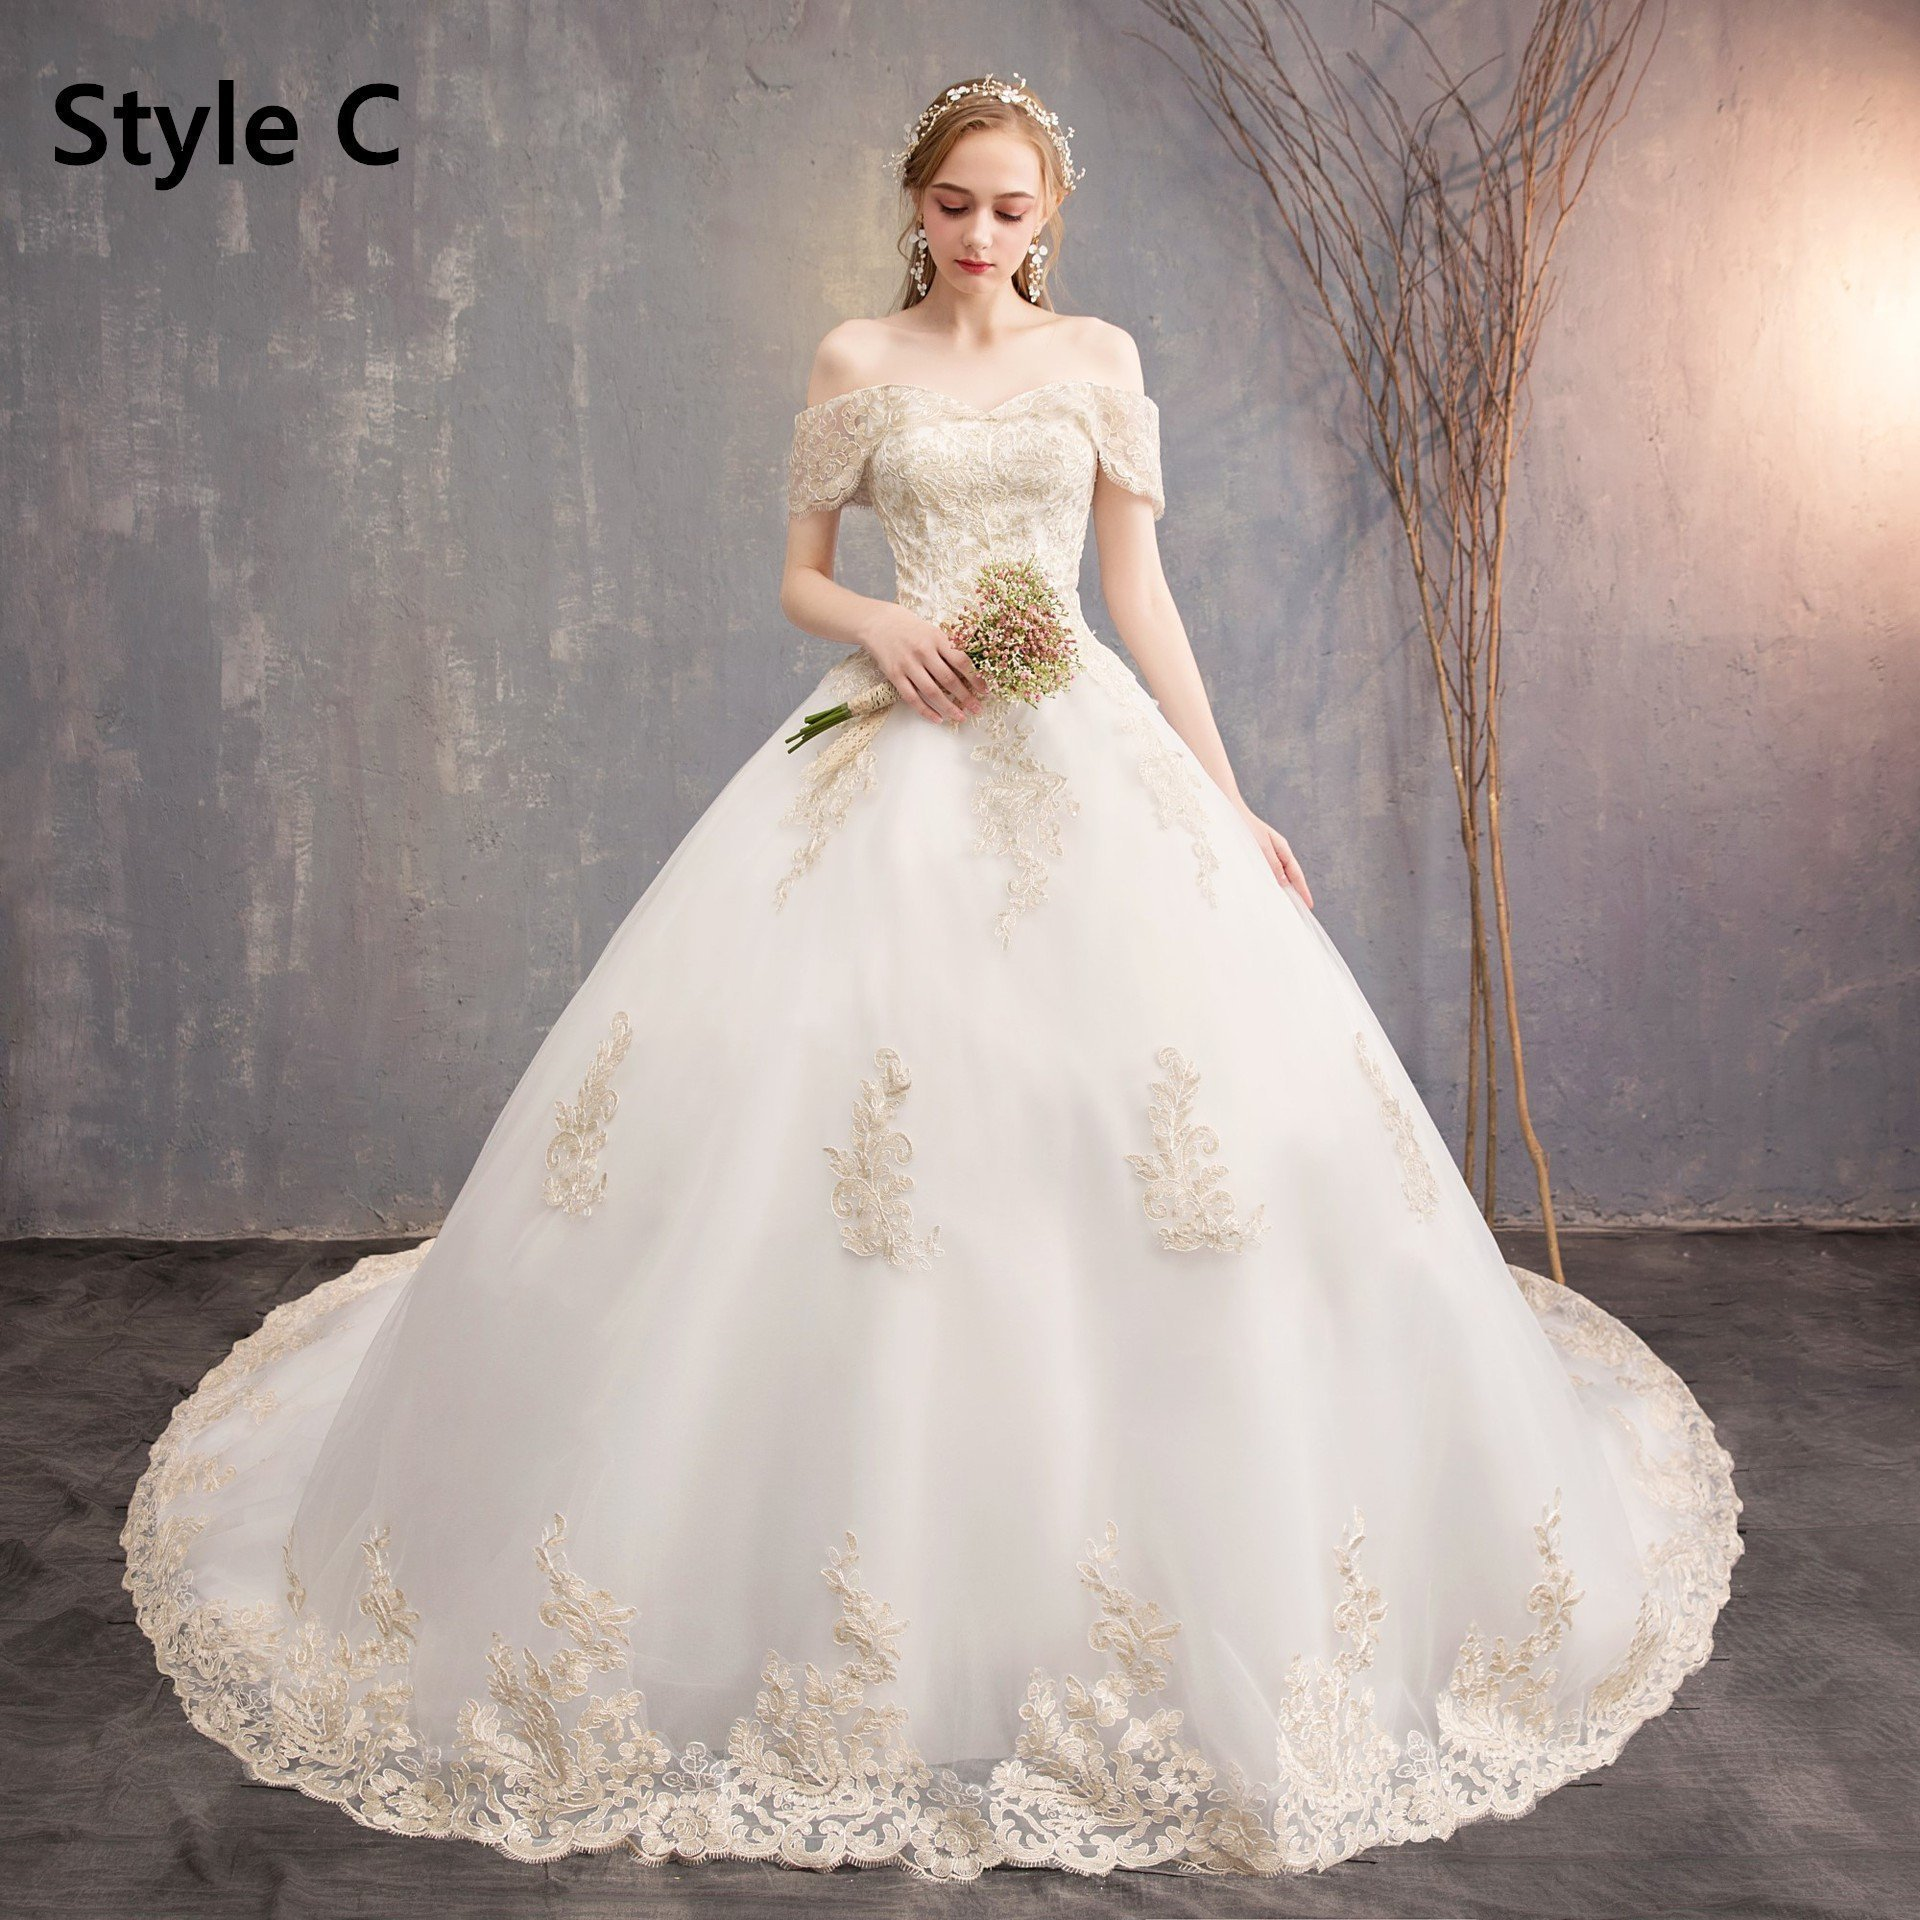 Best Wedding Dresses Lace Dresses Floral Embroidered Long Dress Babydoll Dress Wedding Clothes For Groom Backyard Wedding Ideas Bridal Shows Blue Lace Prom Dress